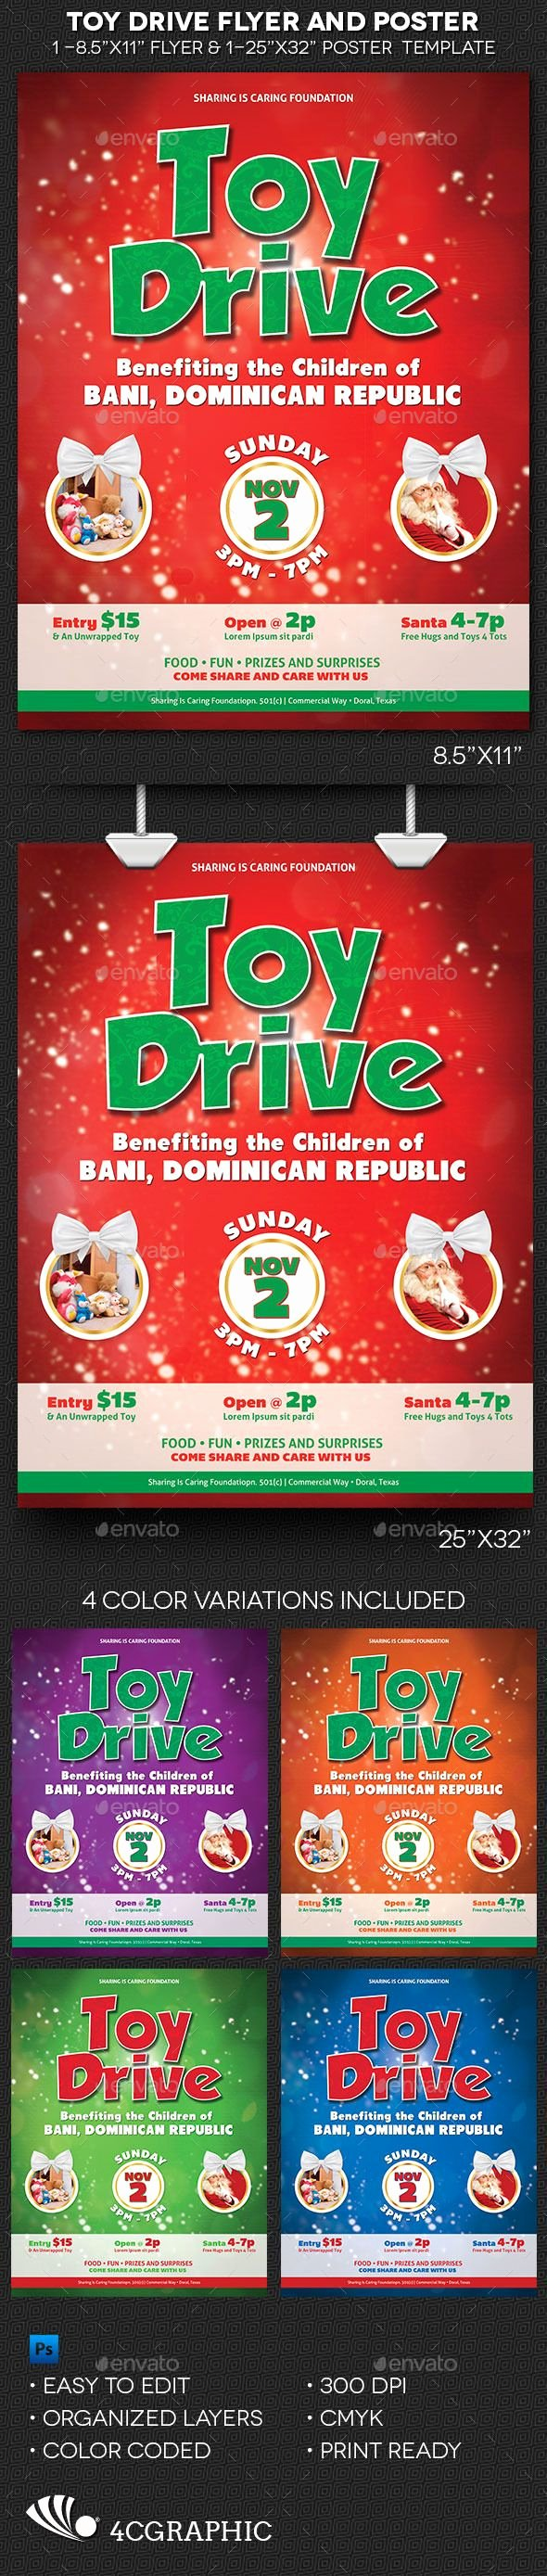 Toy Drive Flyer Template Unique 71 Best Charity Flyer Templates Images On Pinterest